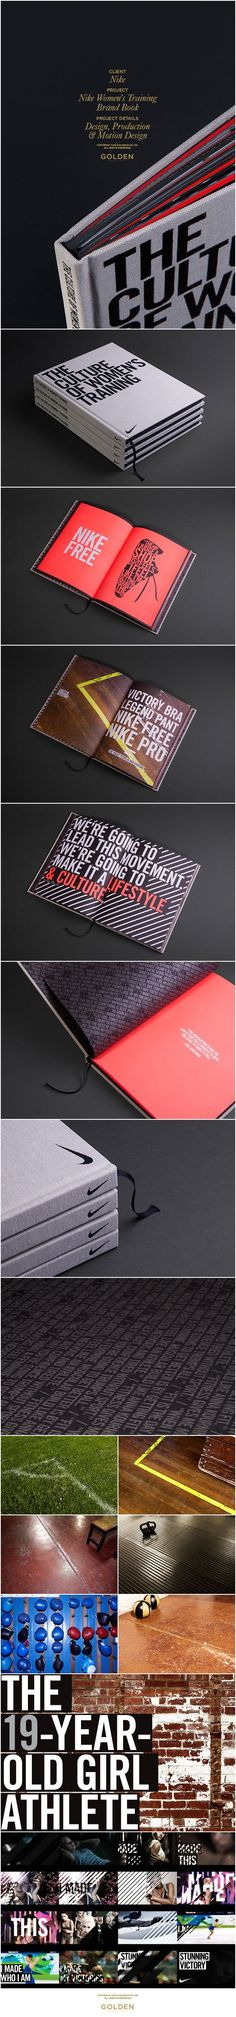 Nike Women's Training Brand Book by GOLDEN , via Behance